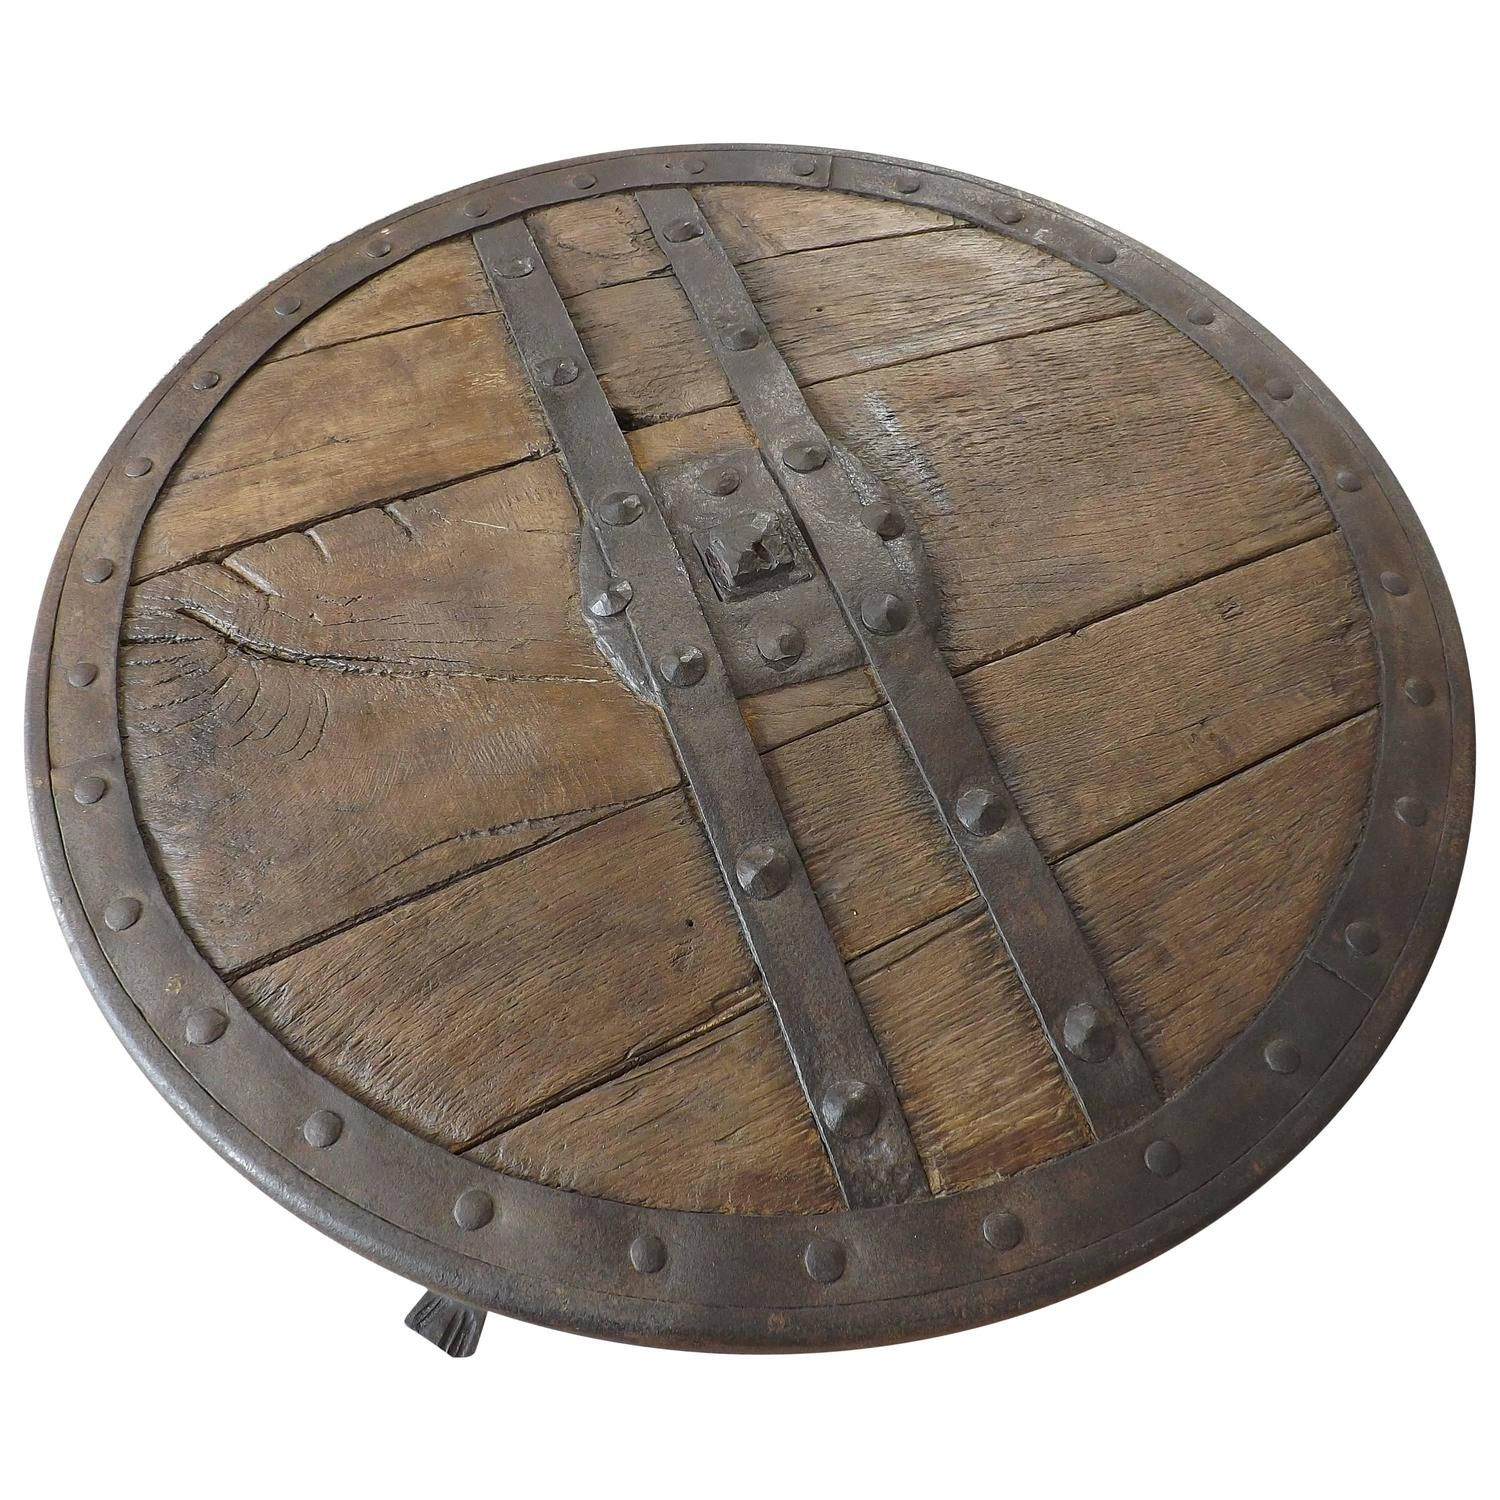 Medieval forged iron and hardwood wagon or chariot wheel coffee medieval forged iron and hardwood wagon or chariot wheel coffee table geotapseo Images